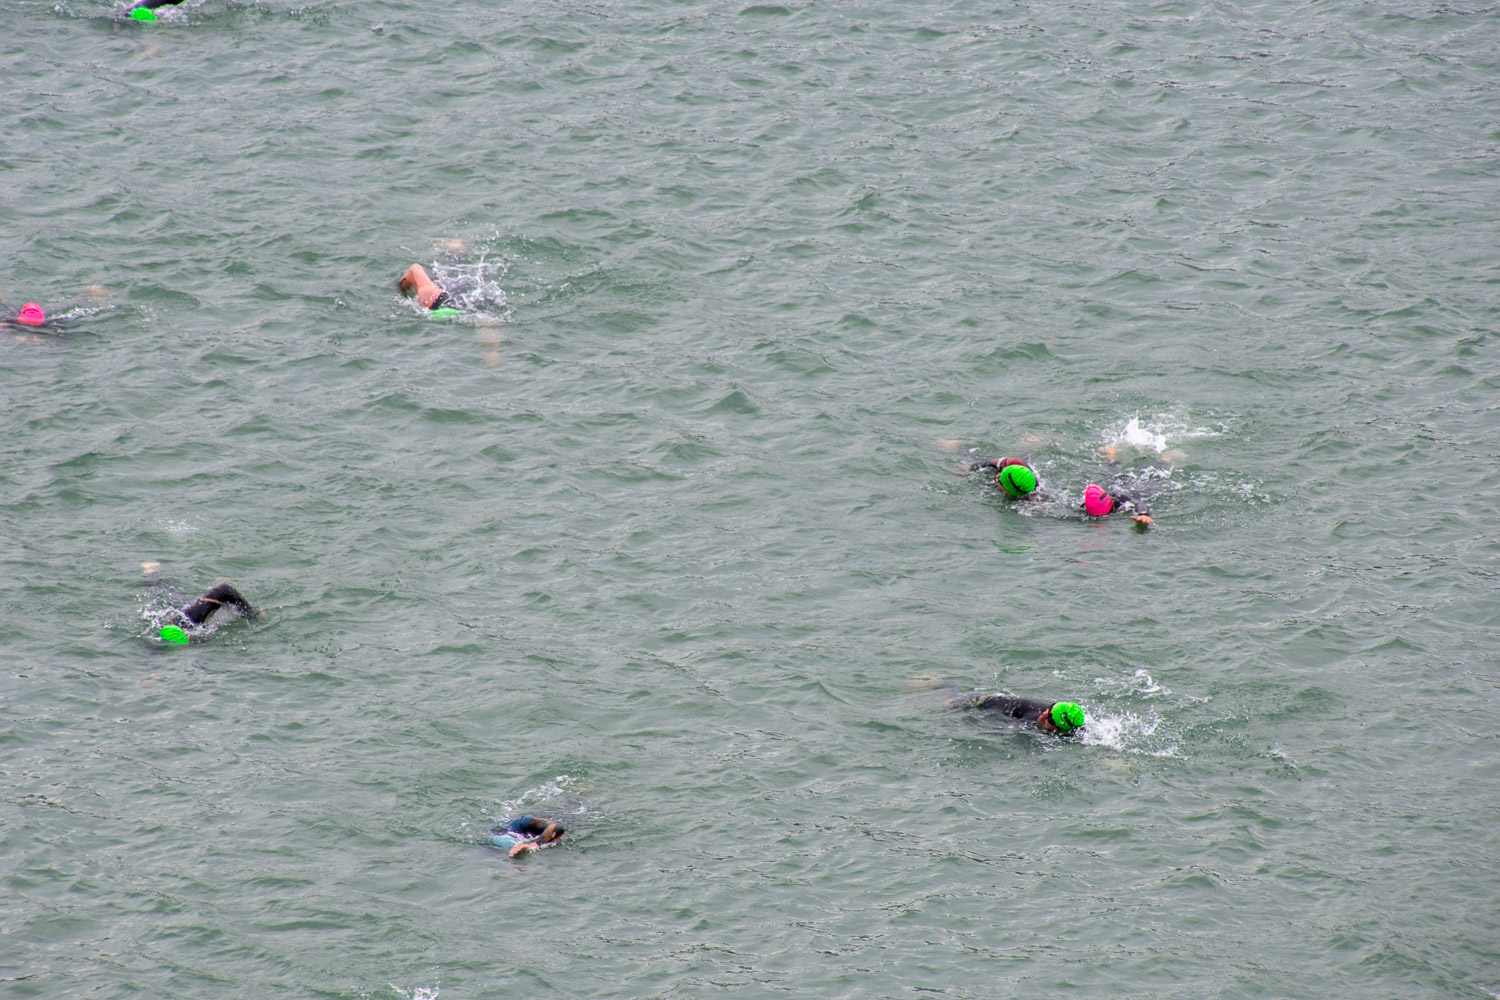 Swimming in Santa Rosa Ironman 2019